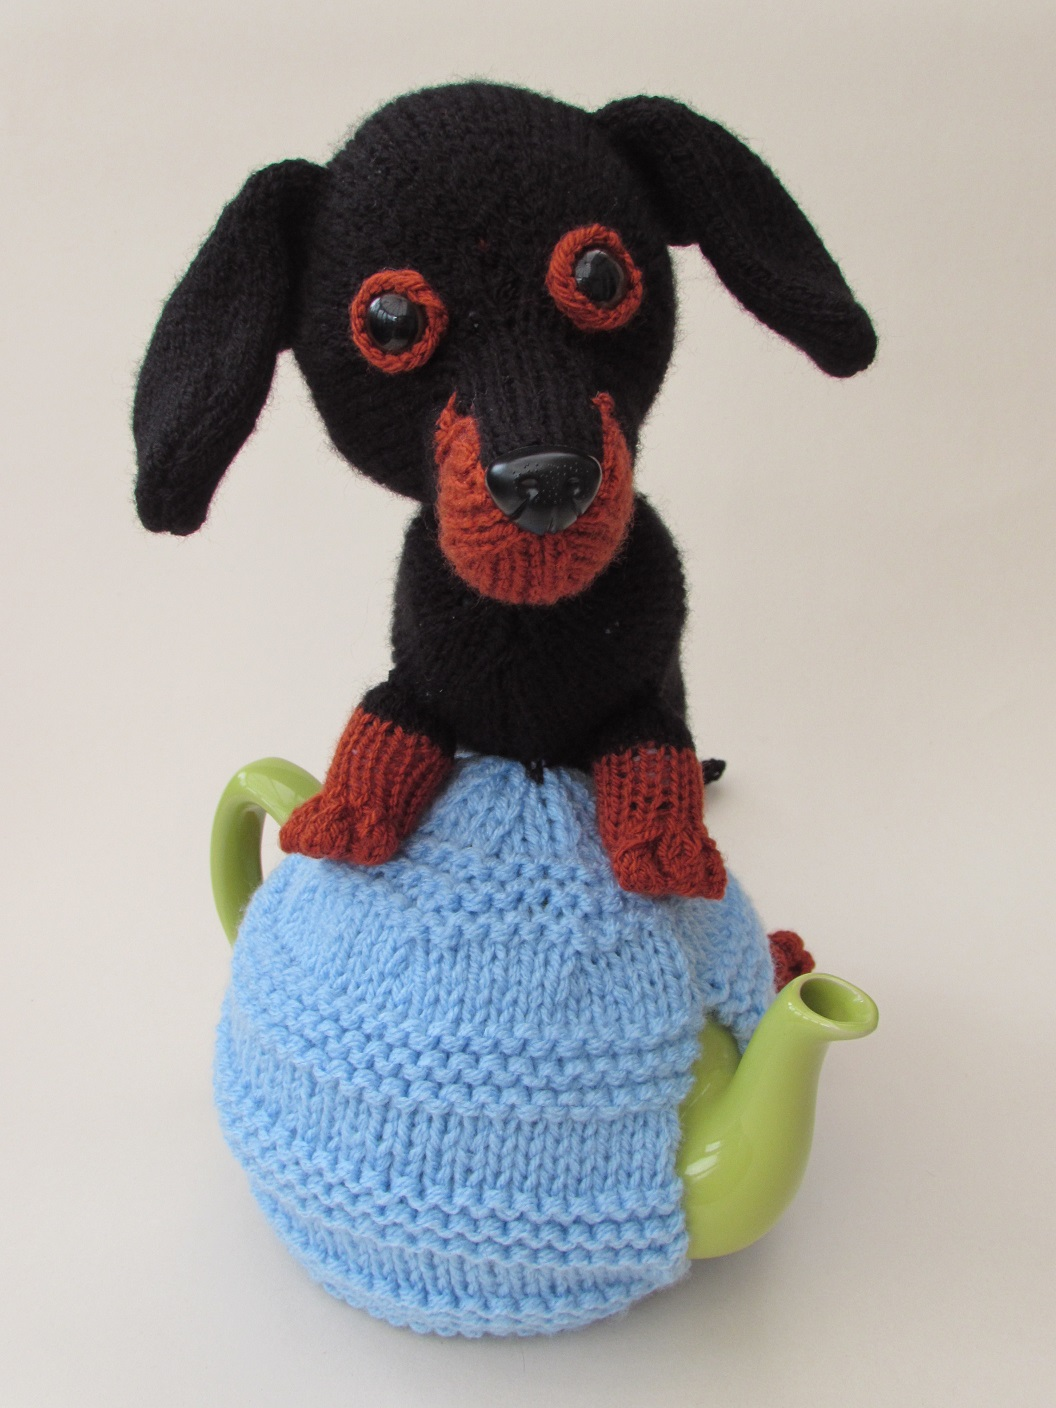 Dachshund Tea Cosy Knitting Pattern